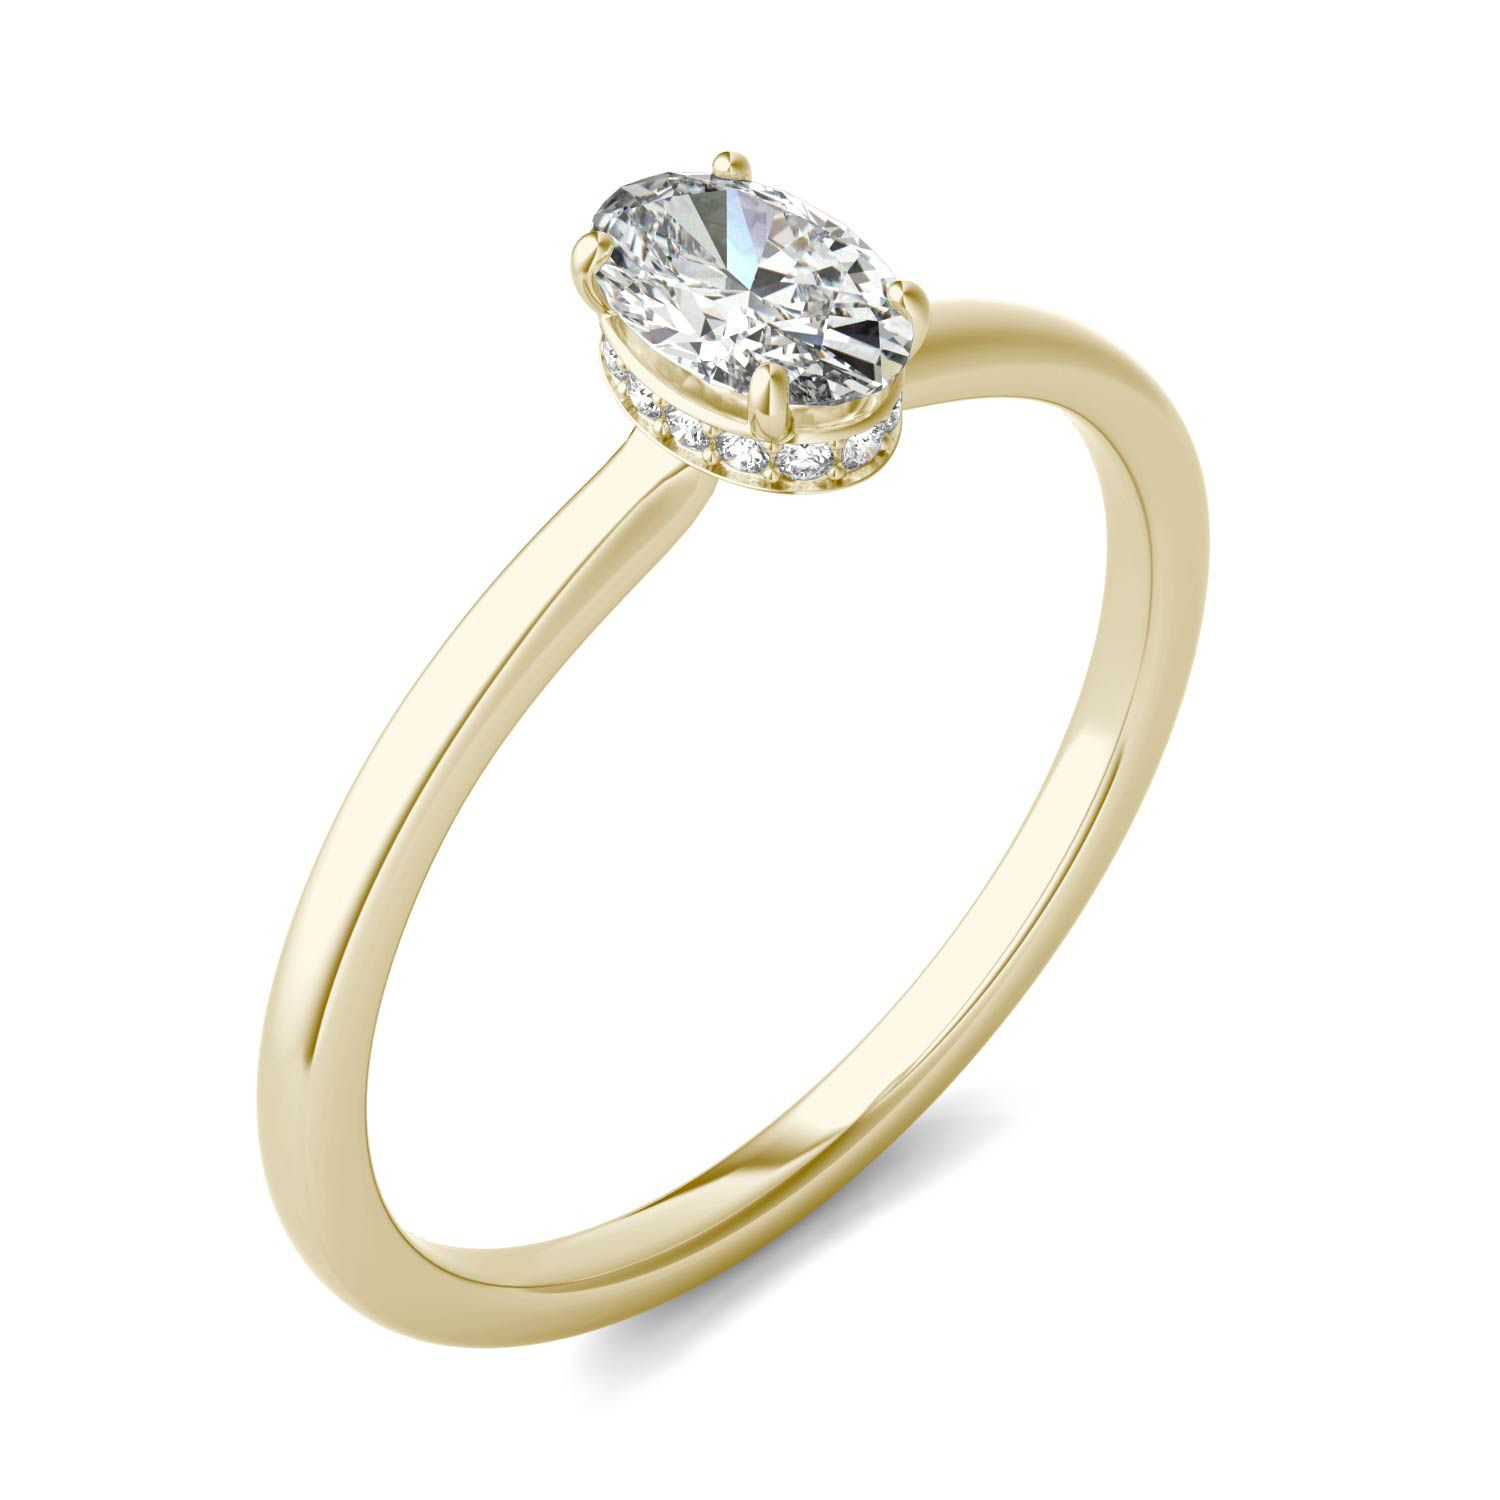 8 Engagement Ring Trends That Will Be Big In 2021 According To Experts In 2021 Trending Engagement Rings Ring Trends Big Engagement Rings